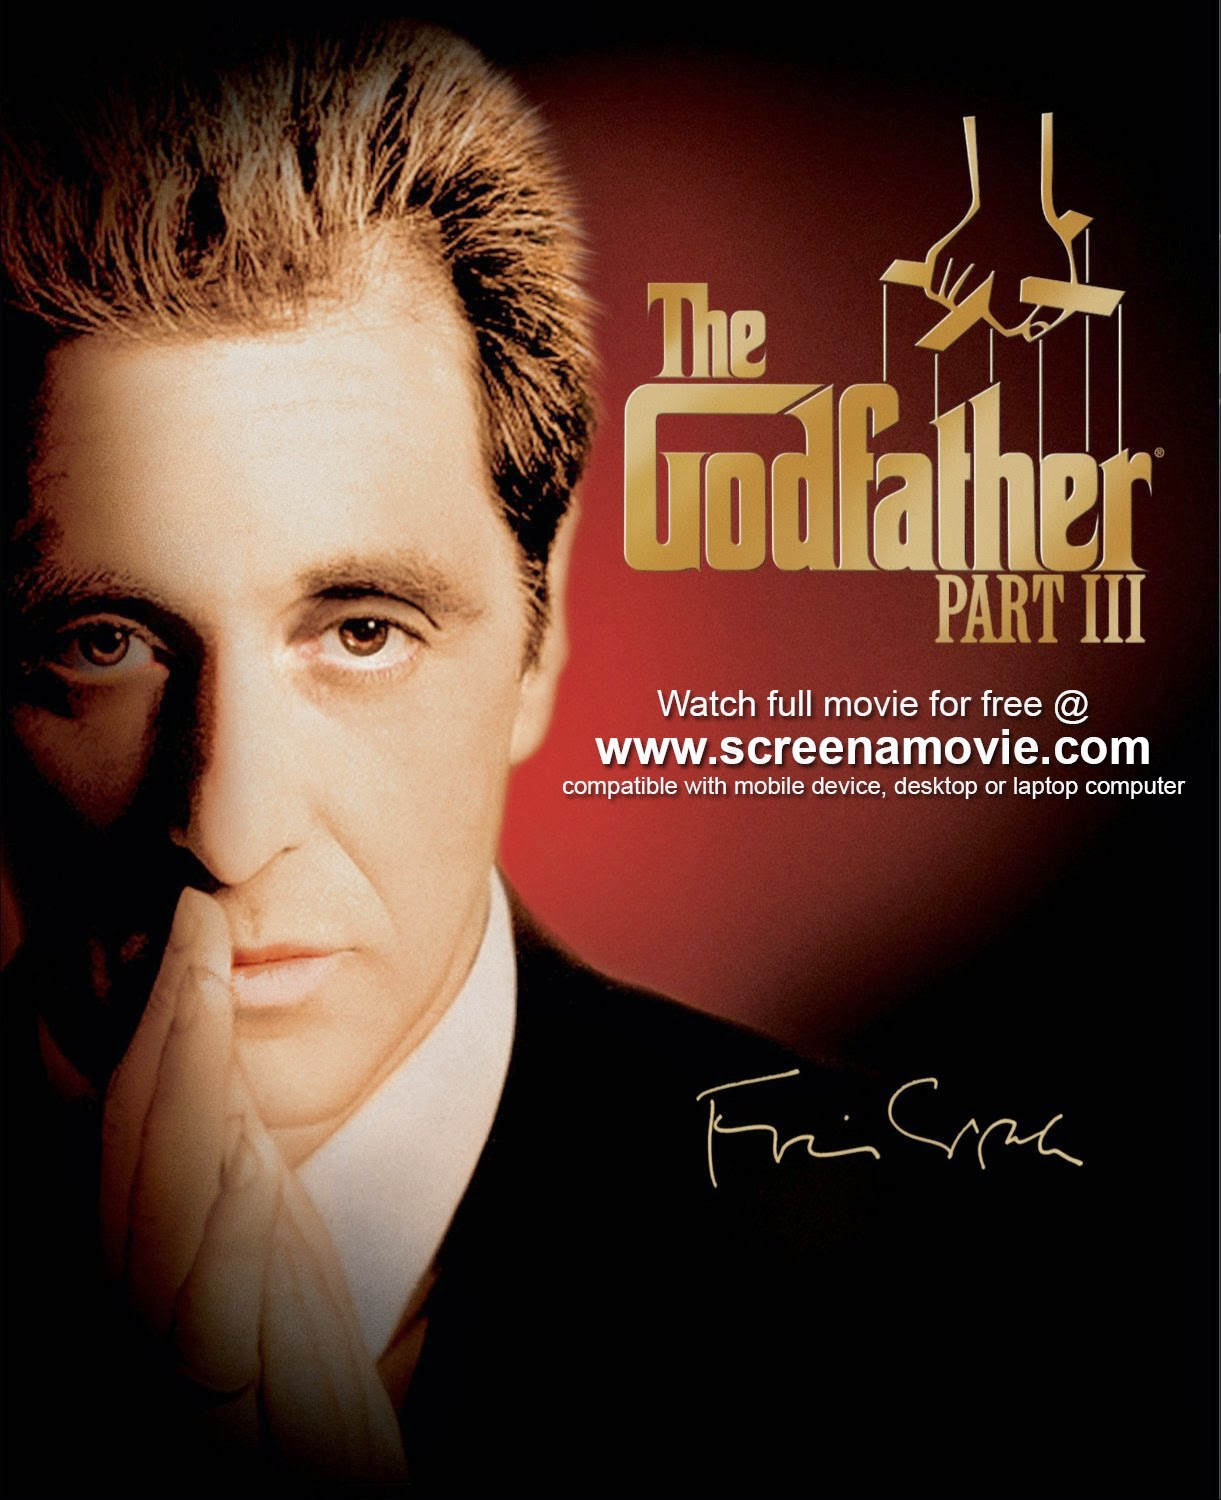 The_Godfather_Part_III_@screenamovie